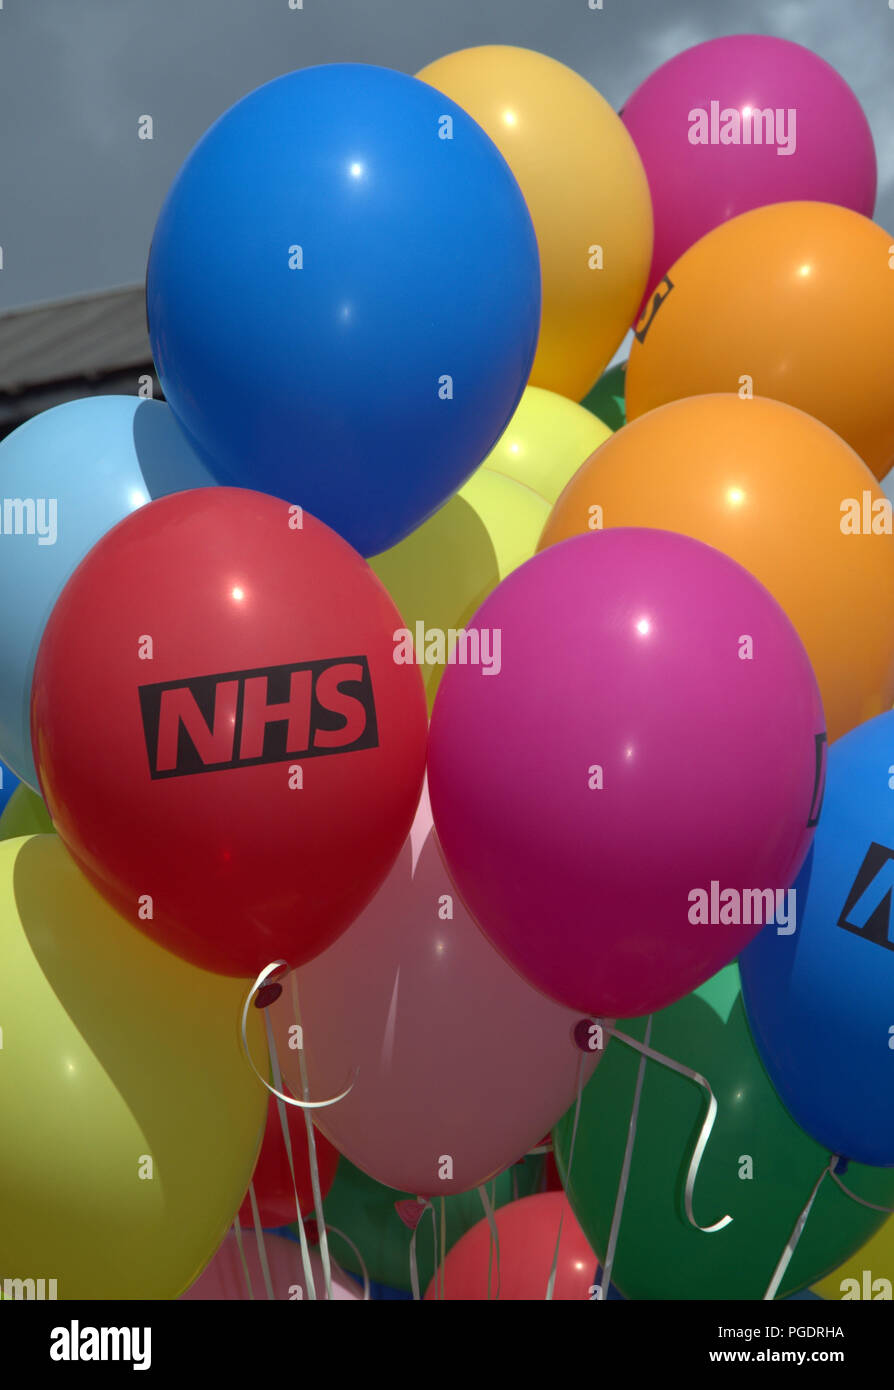 Balloons carried by participants in the NHS entry in Manchester LGBT Pride Parade 2018 - Stock Image